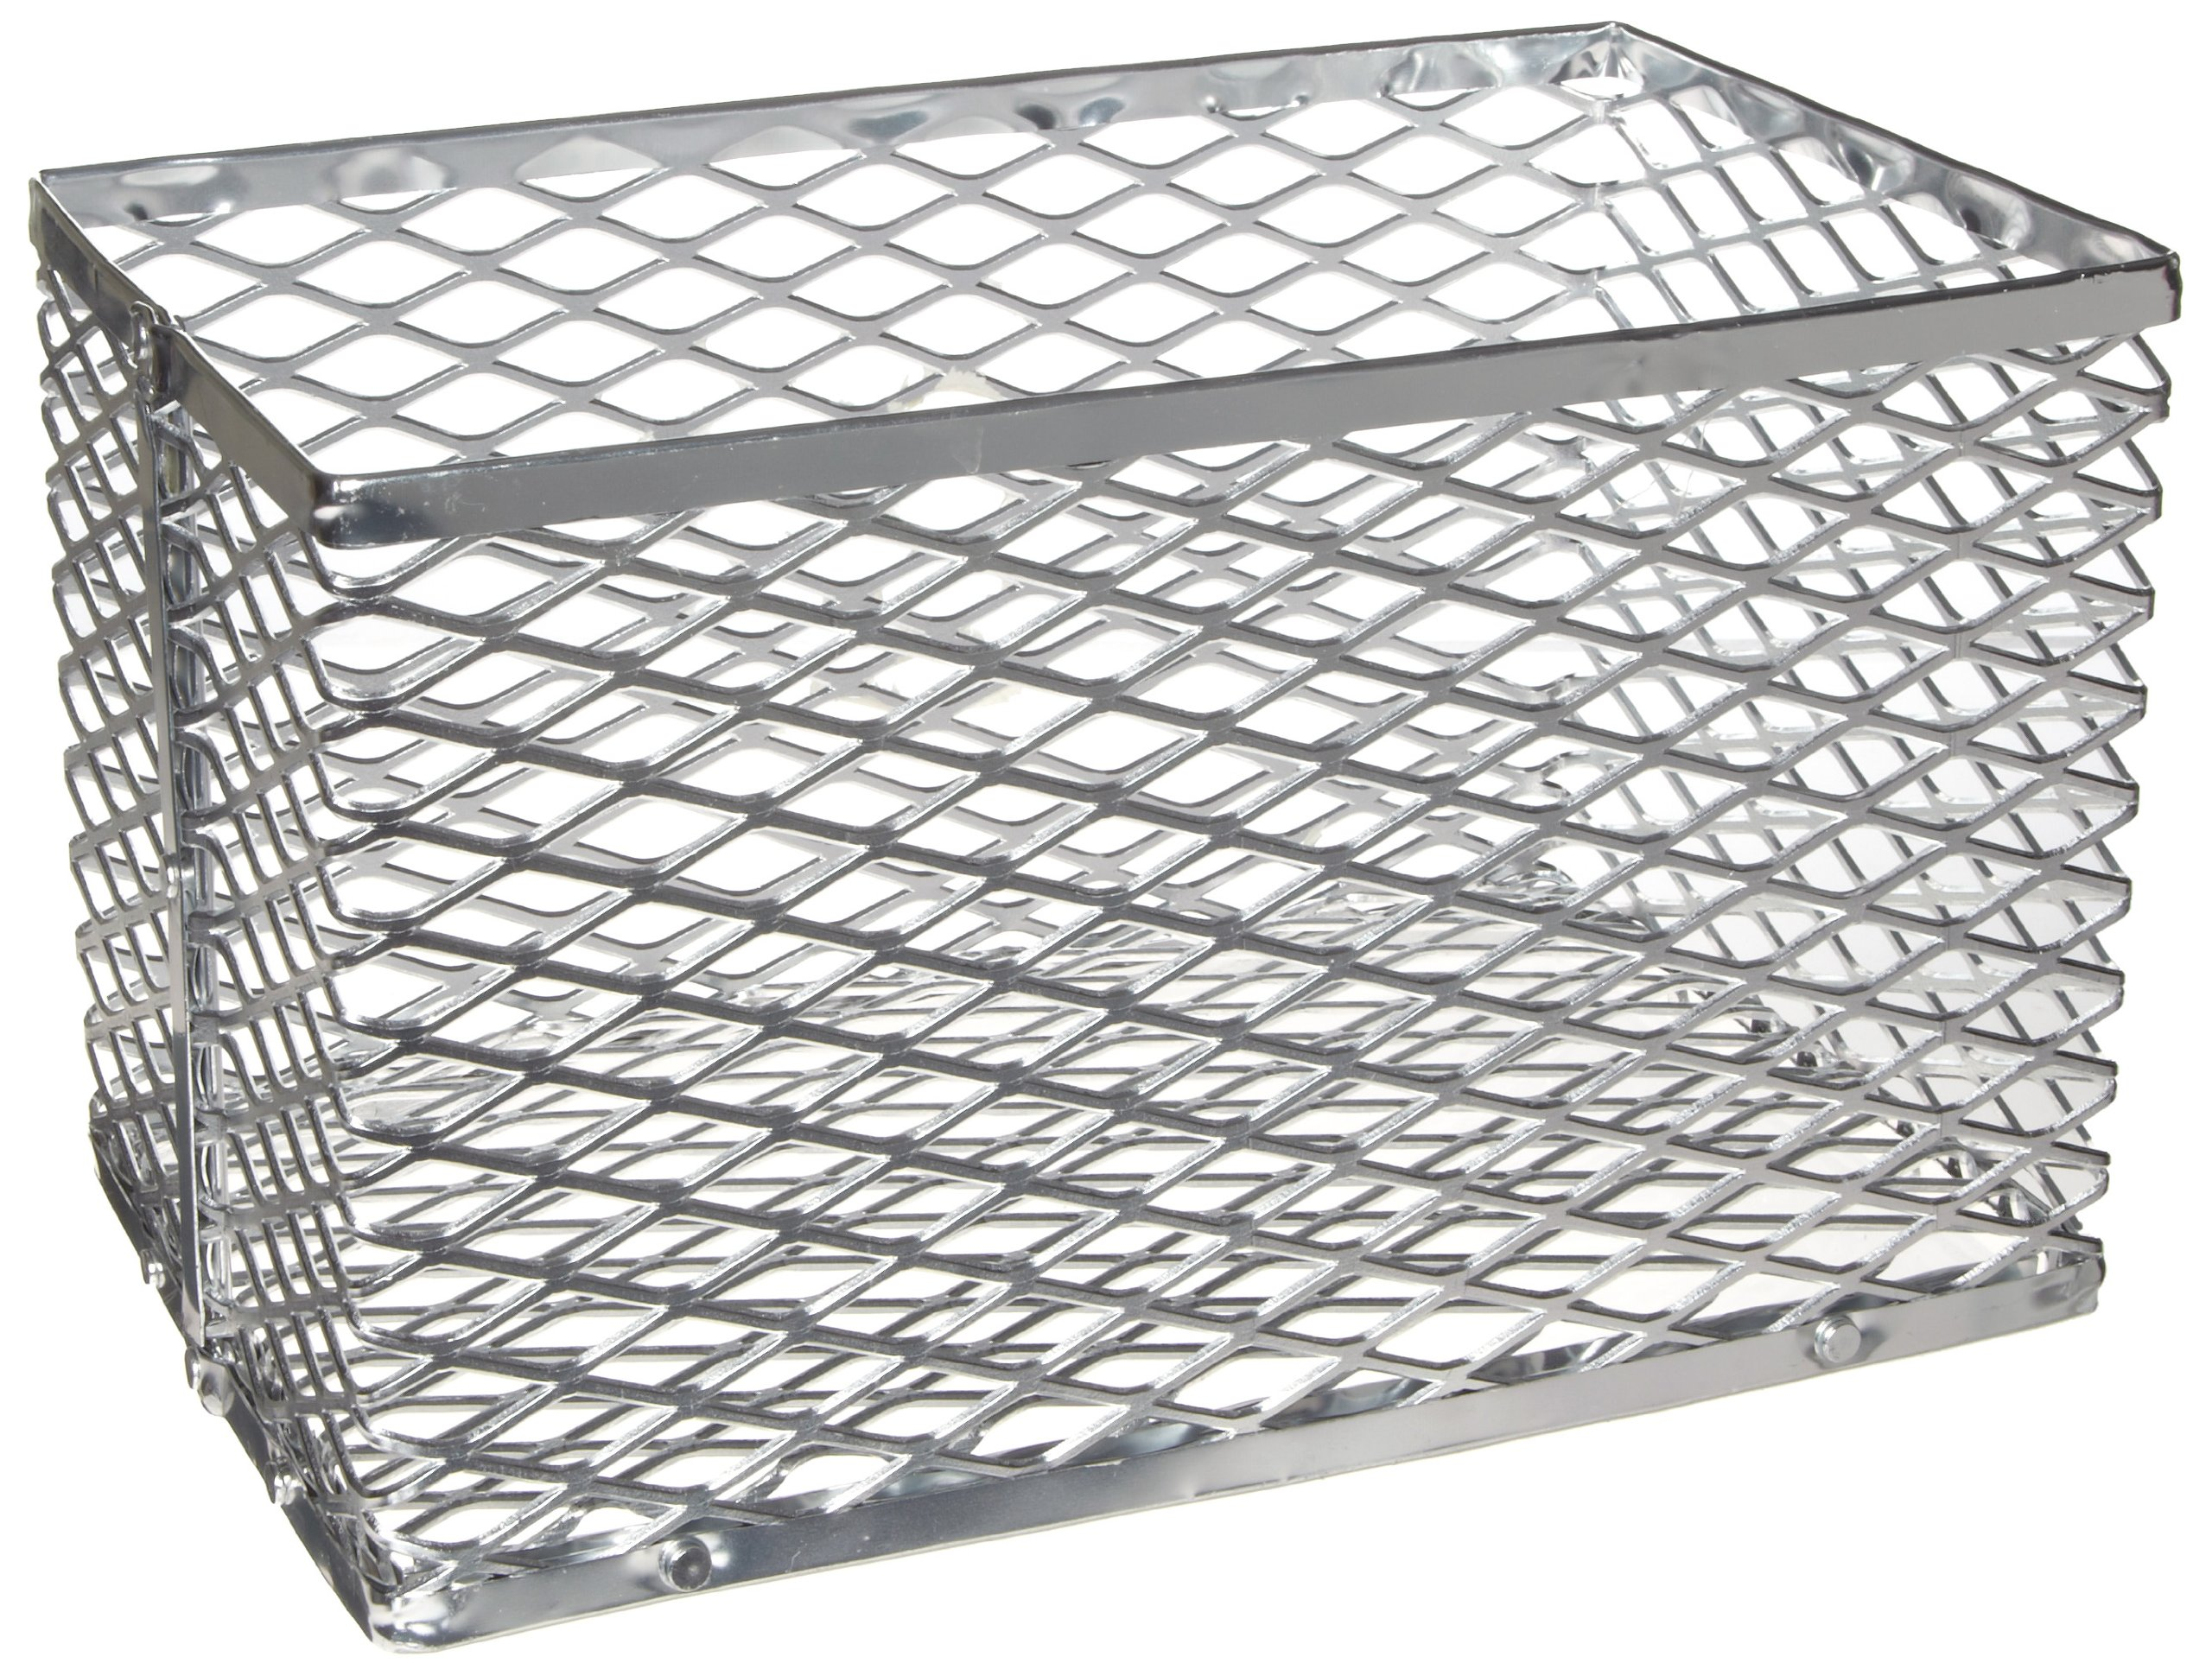 Heathrow Scientific HD20341C Aluminum Large Test Tube Basket, 332mm Length x 228mm Width x 178mm Height